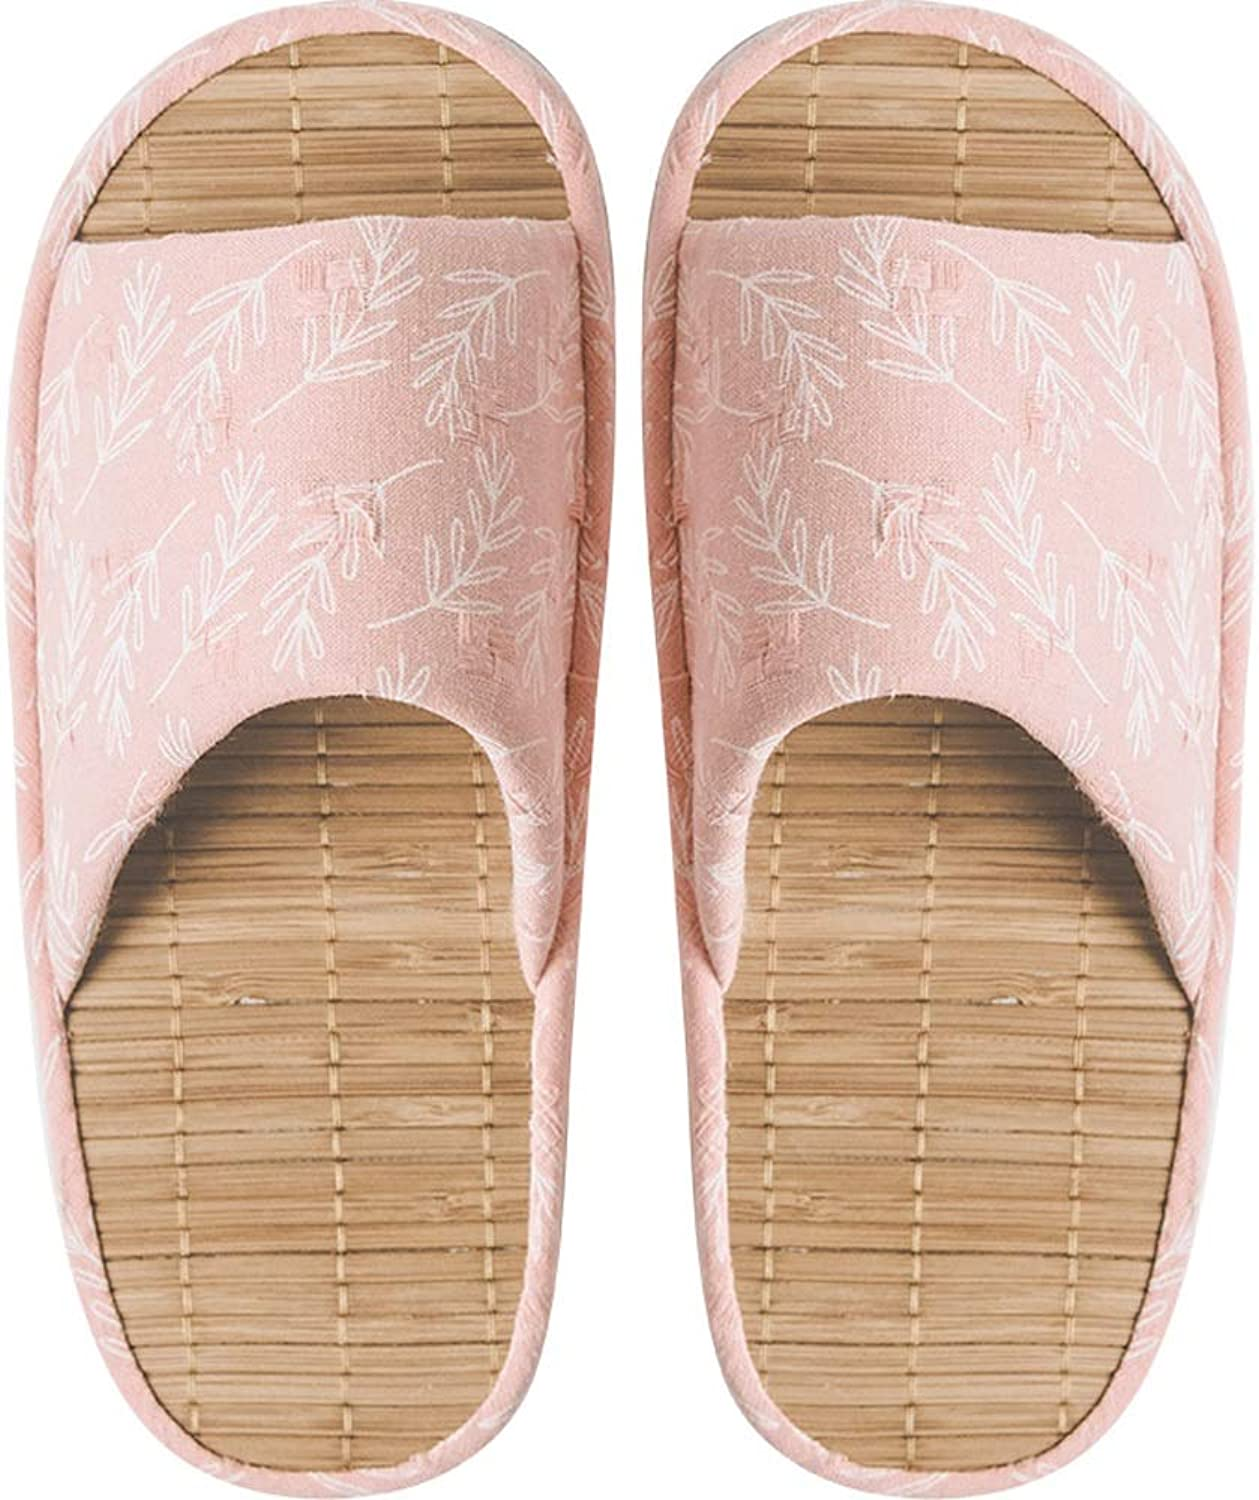 WSYHXMflip flop Slippers Women's Spring and Summer Home Japanese-Style Thick-Soled Indoor Men's Sandals